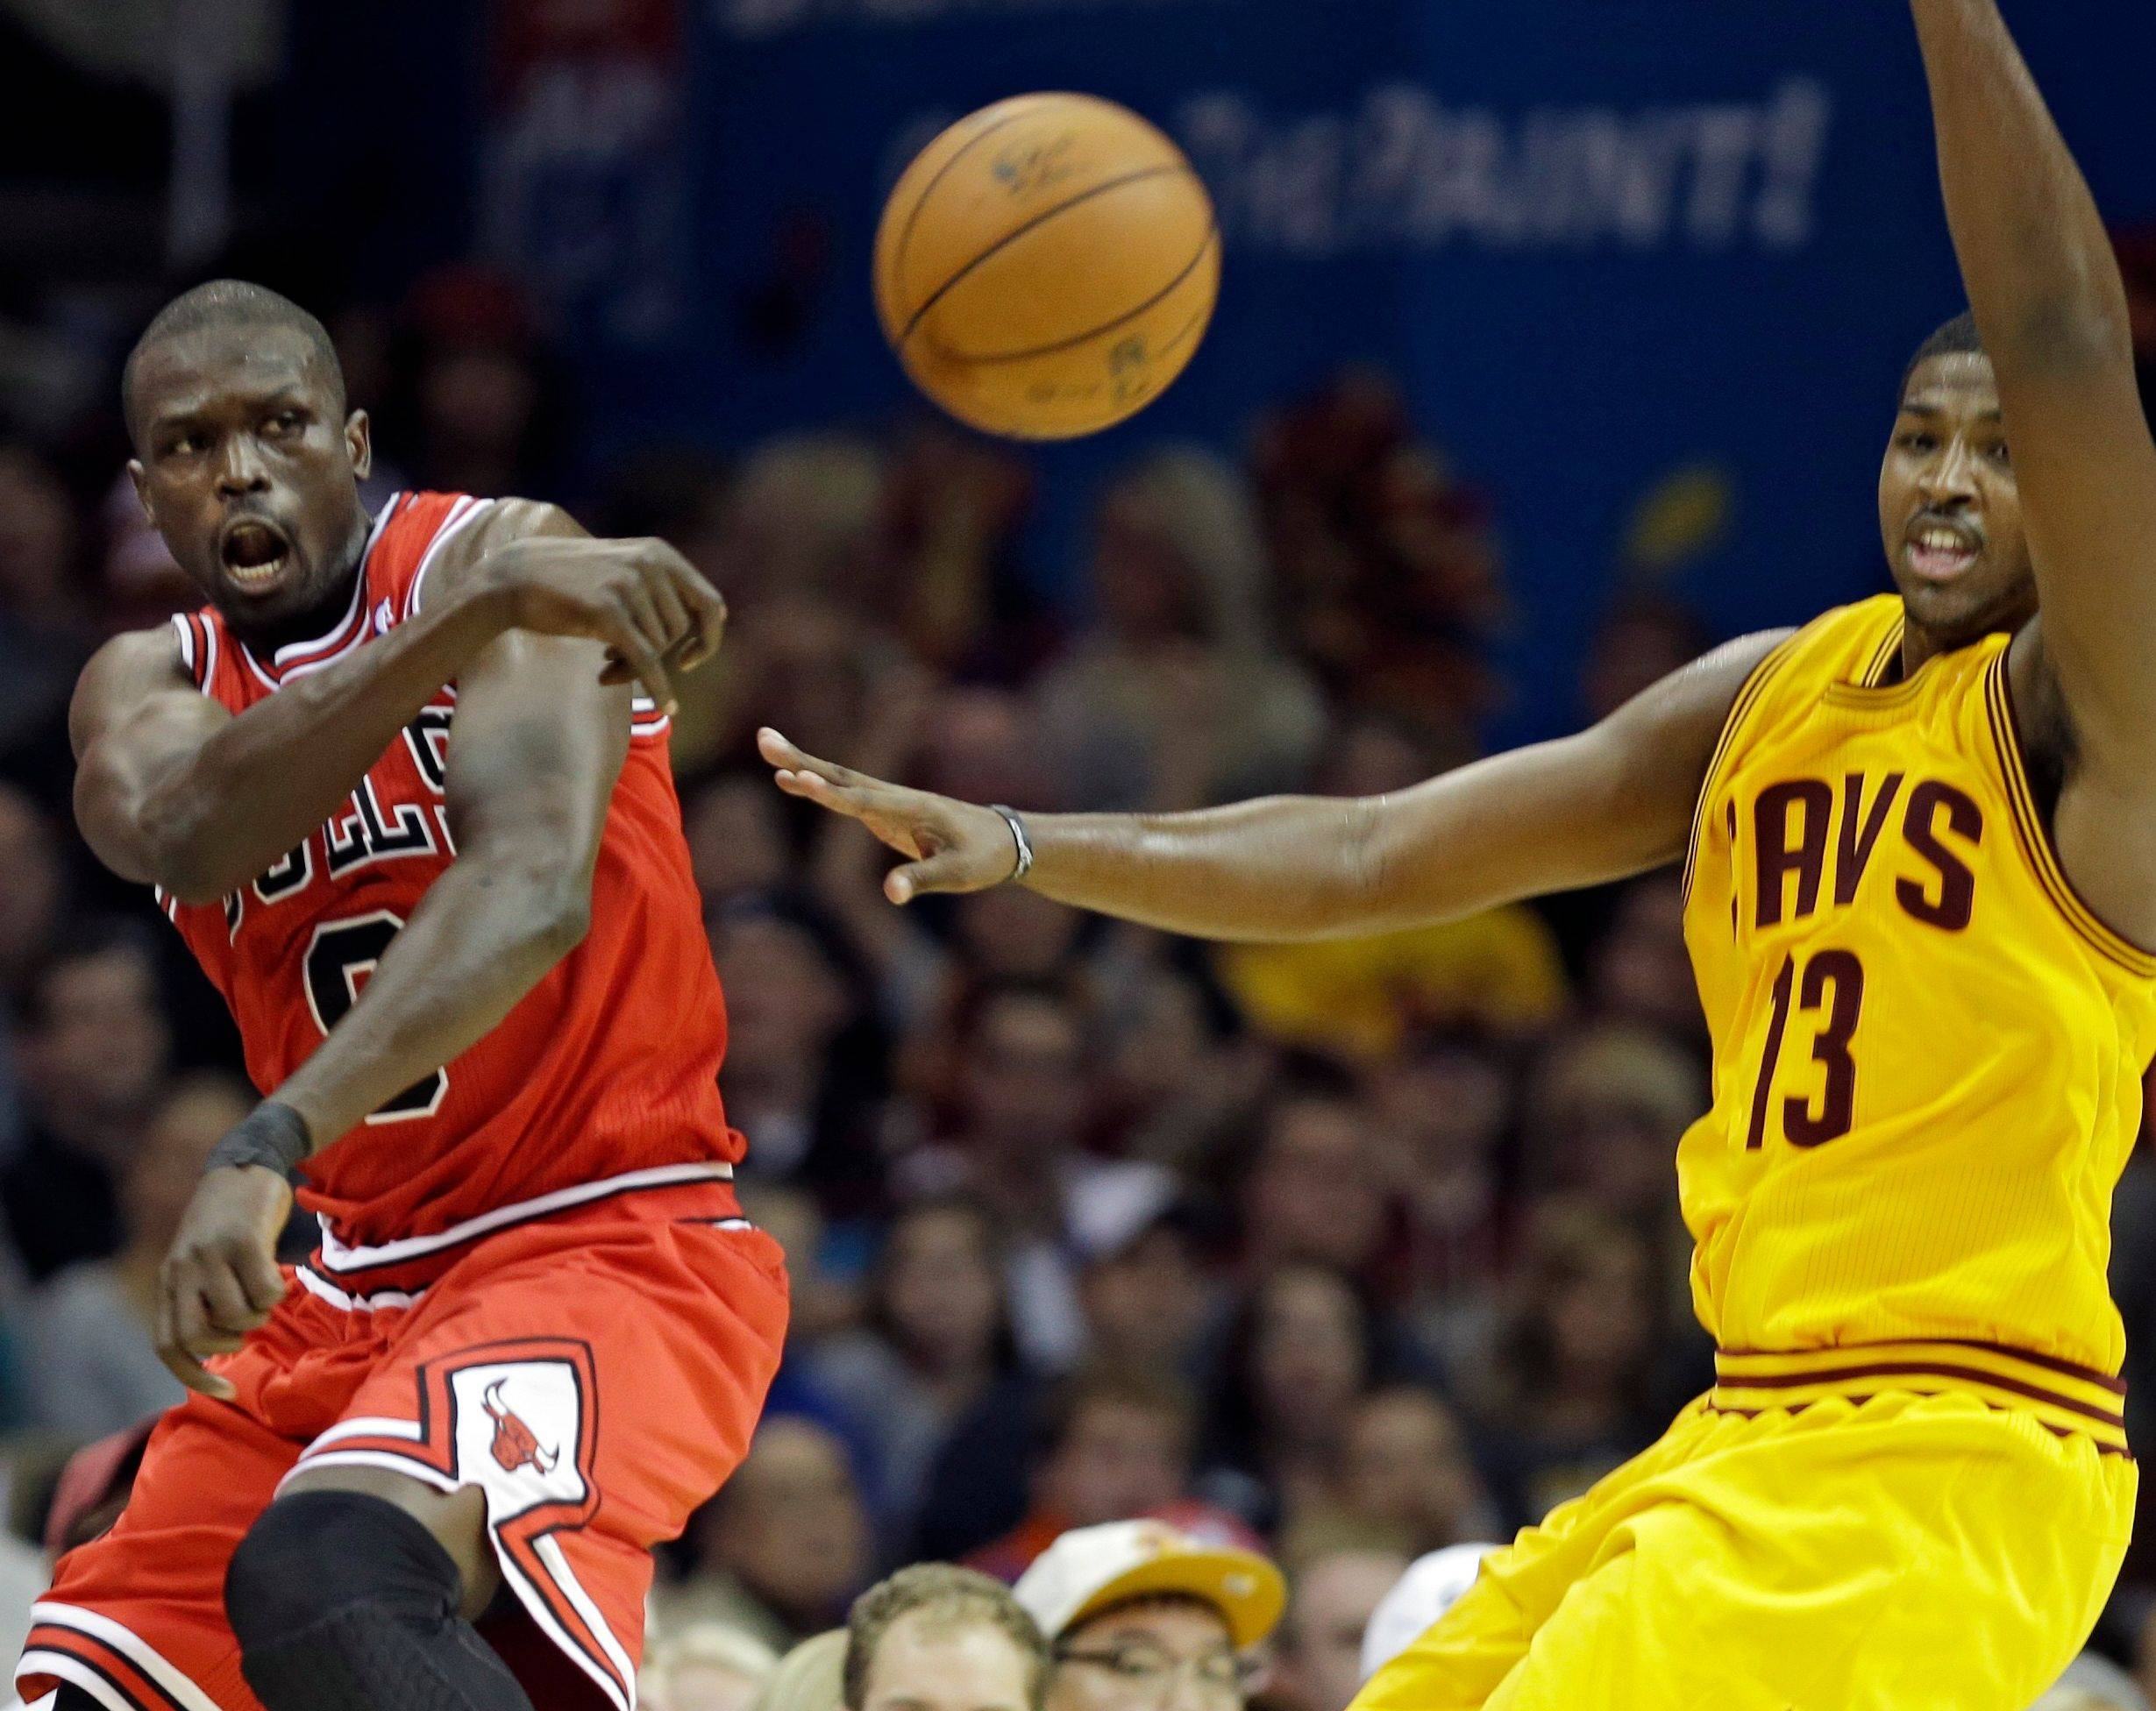 Carlos Boozer slams home 2 of his 19 points against Cleveland. Boozer (7 of 11) was part of a sharp-shooting Bulls squad that hit 63.8 percent of its field-goal attempts.